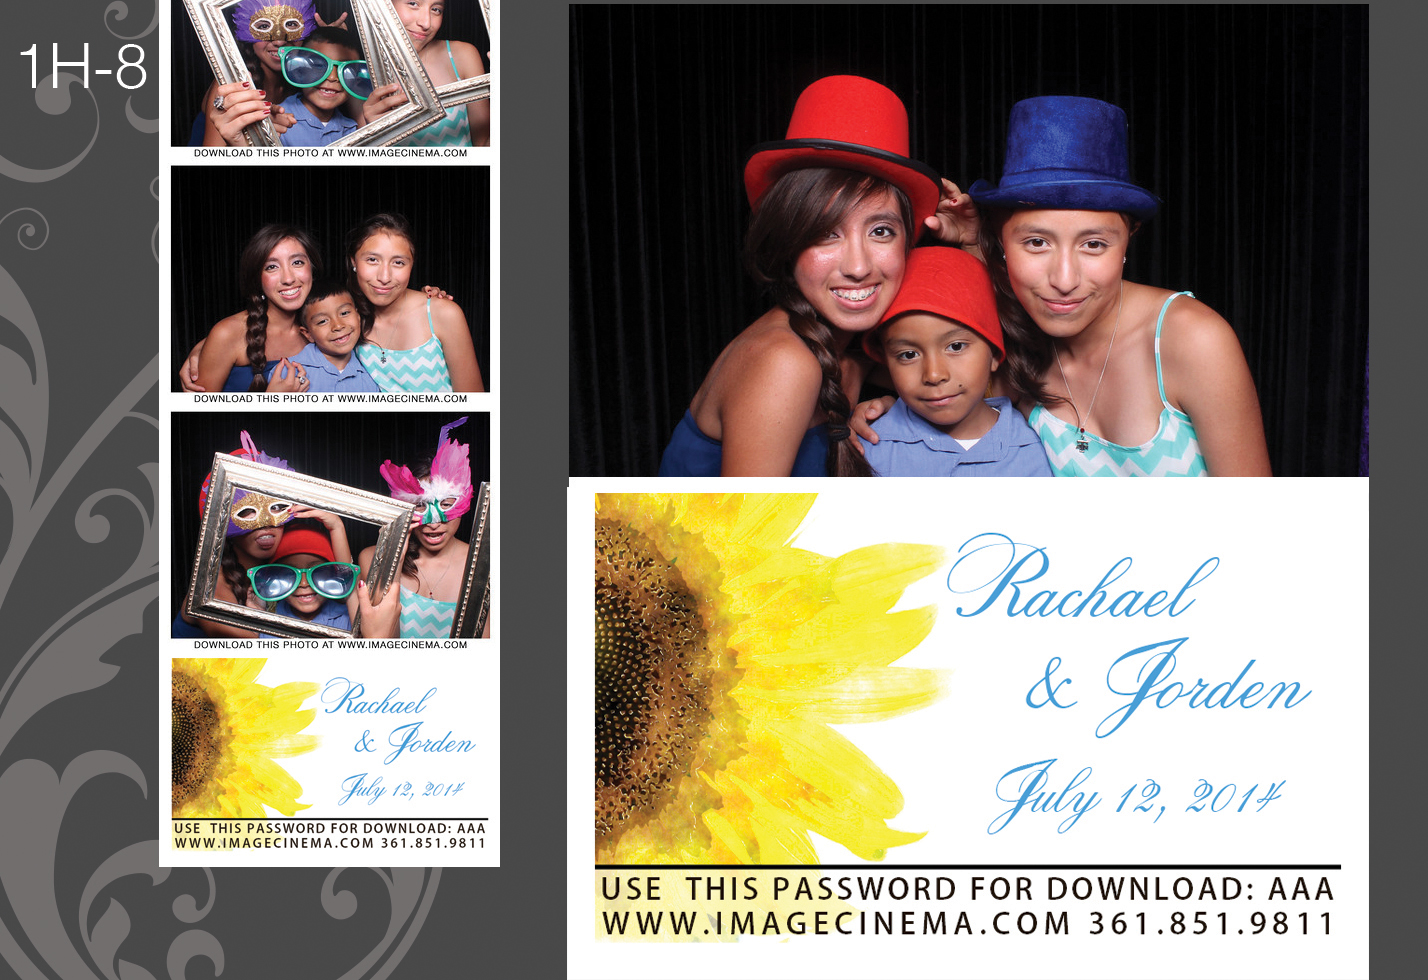 Photo Booth 1H-8